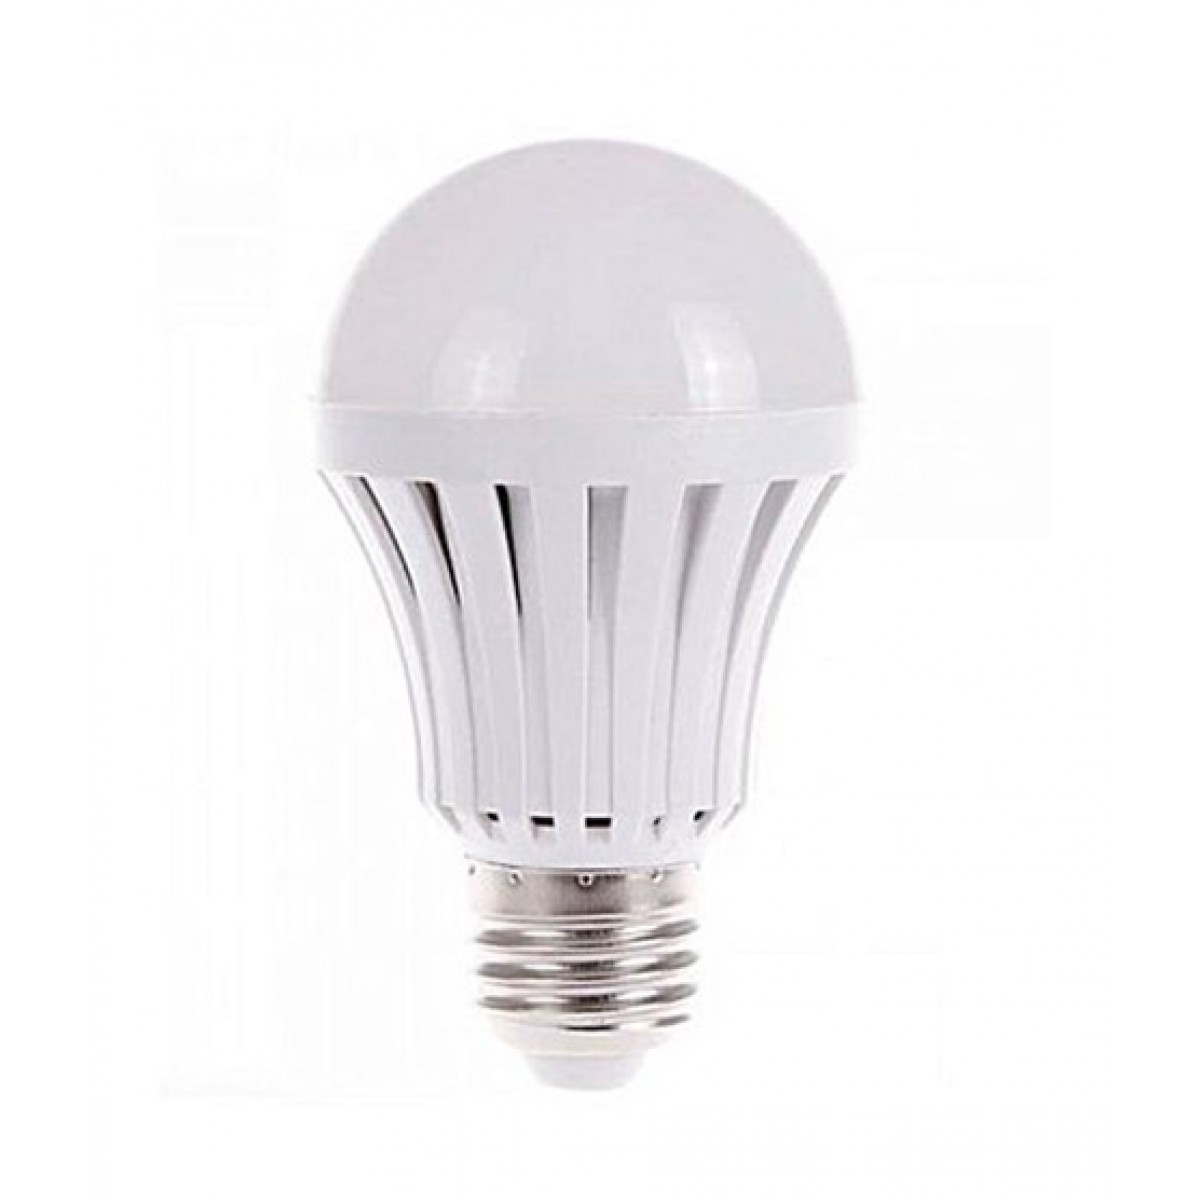 Rubian Rechargeable LED Bulb Price in Pakistan   Buy Rubian 7W Rechargeable LED Bulb   iShopping.pk